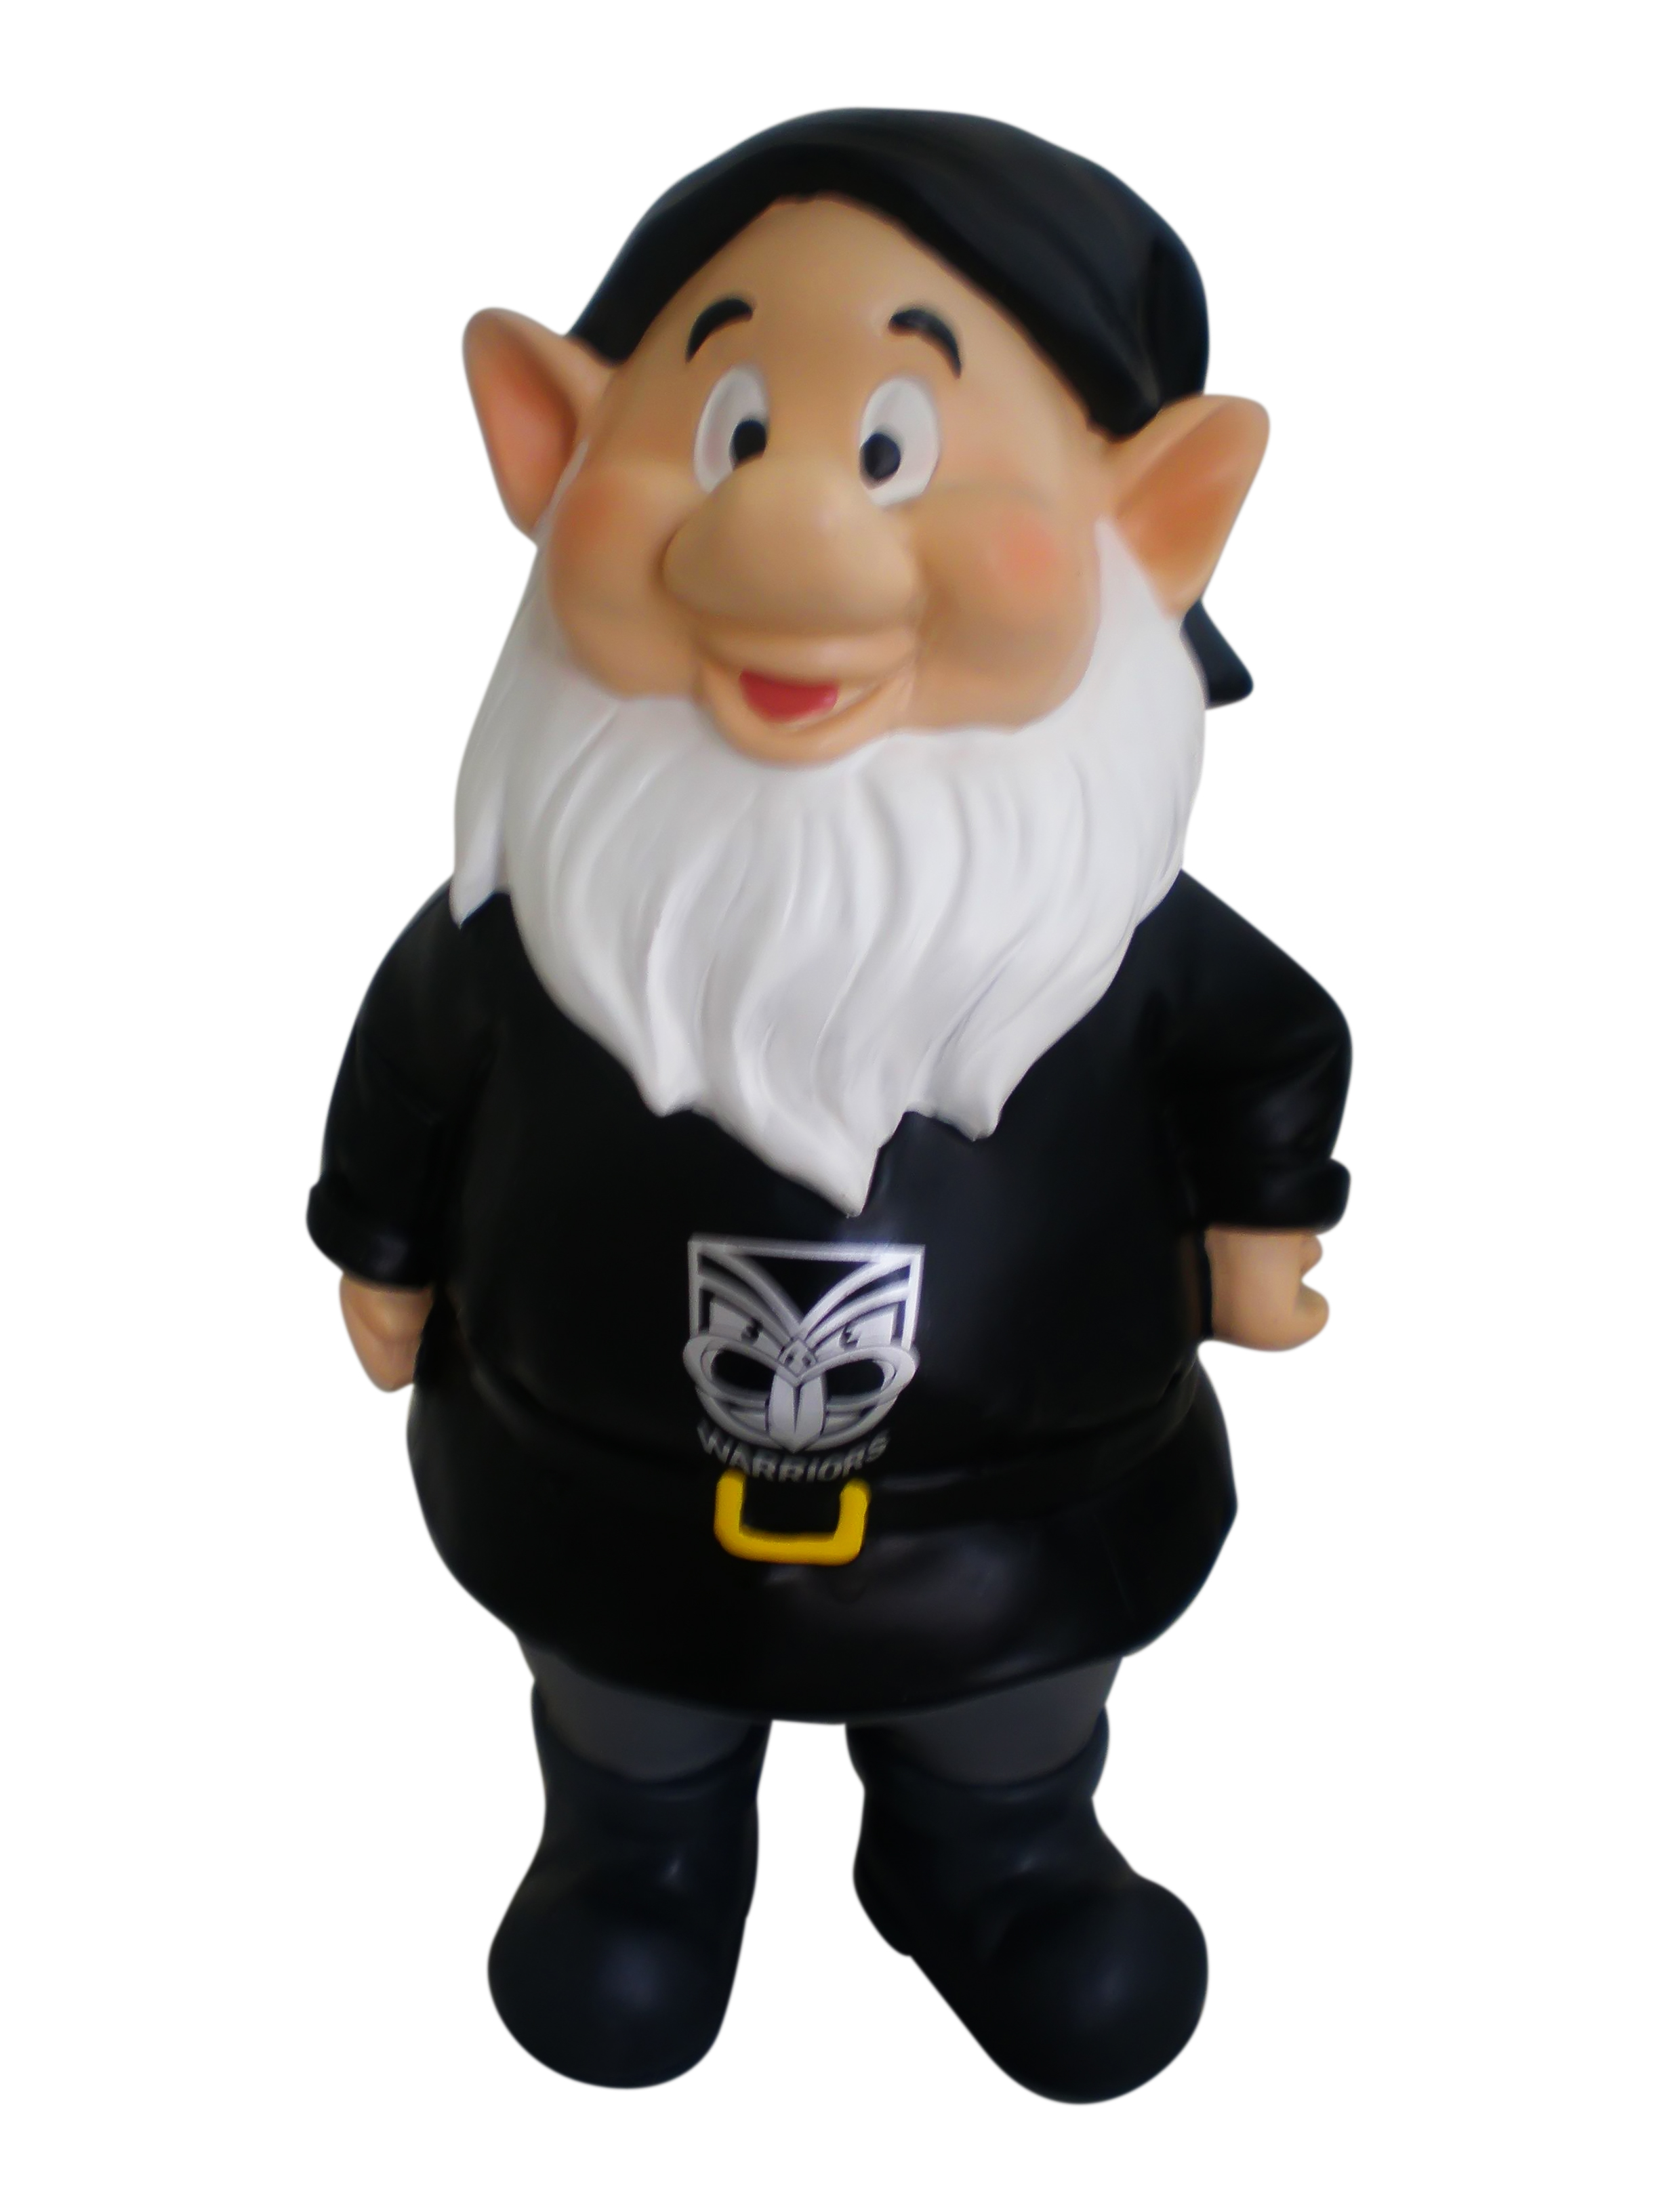 New-Zealand-Warriors-NRL-Garden-Gnome-In-Team-Colours-and-with-Team-Name